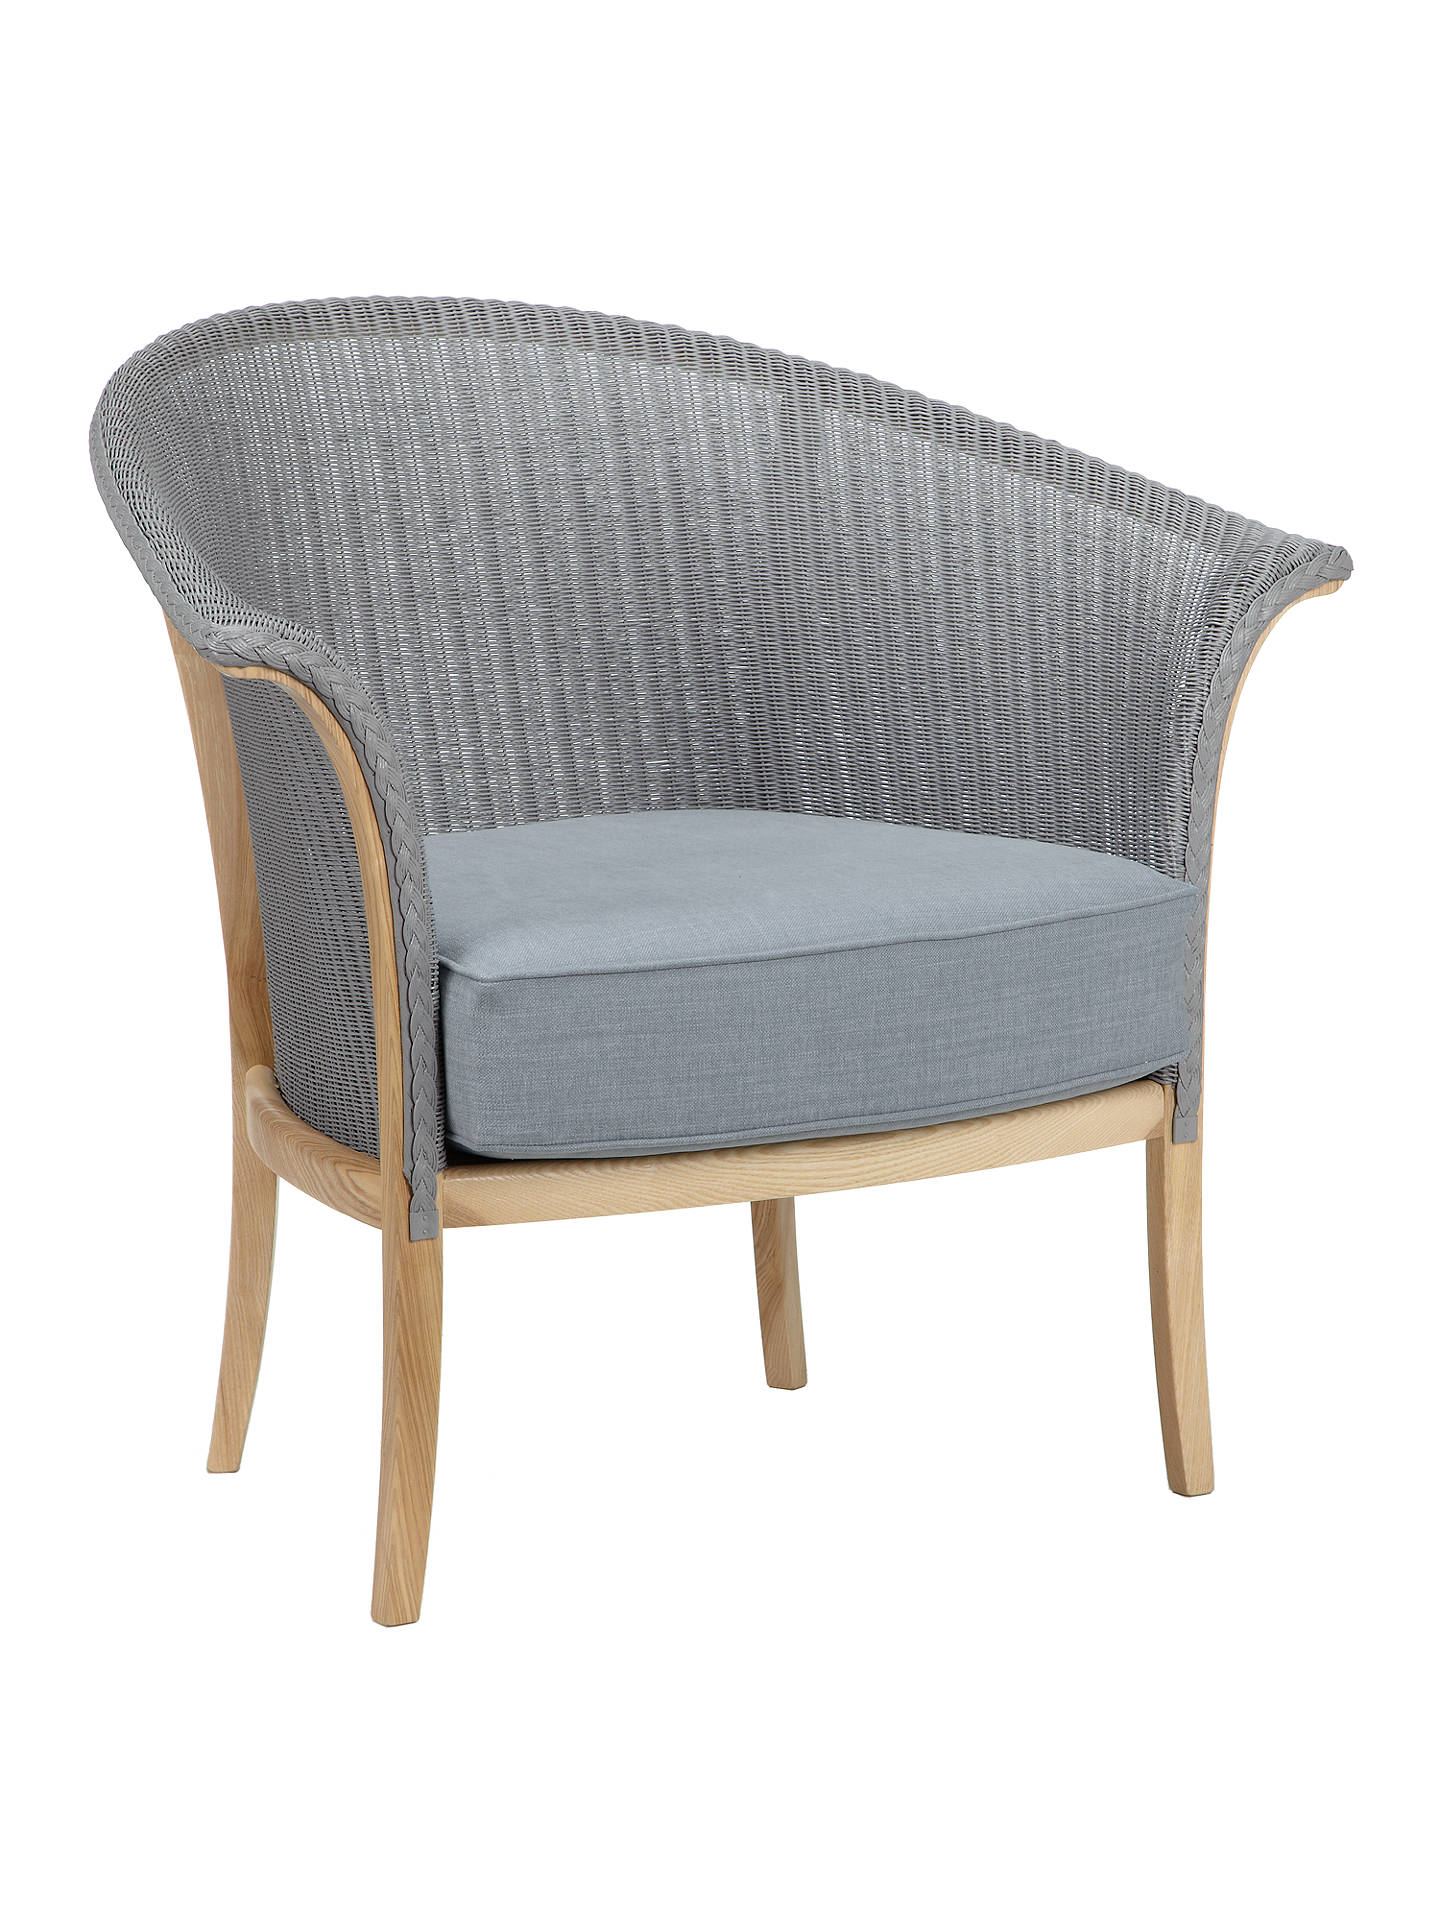 BuyLloyd Loom of Spalding Chair, Light Blue Online at johnlewis.com